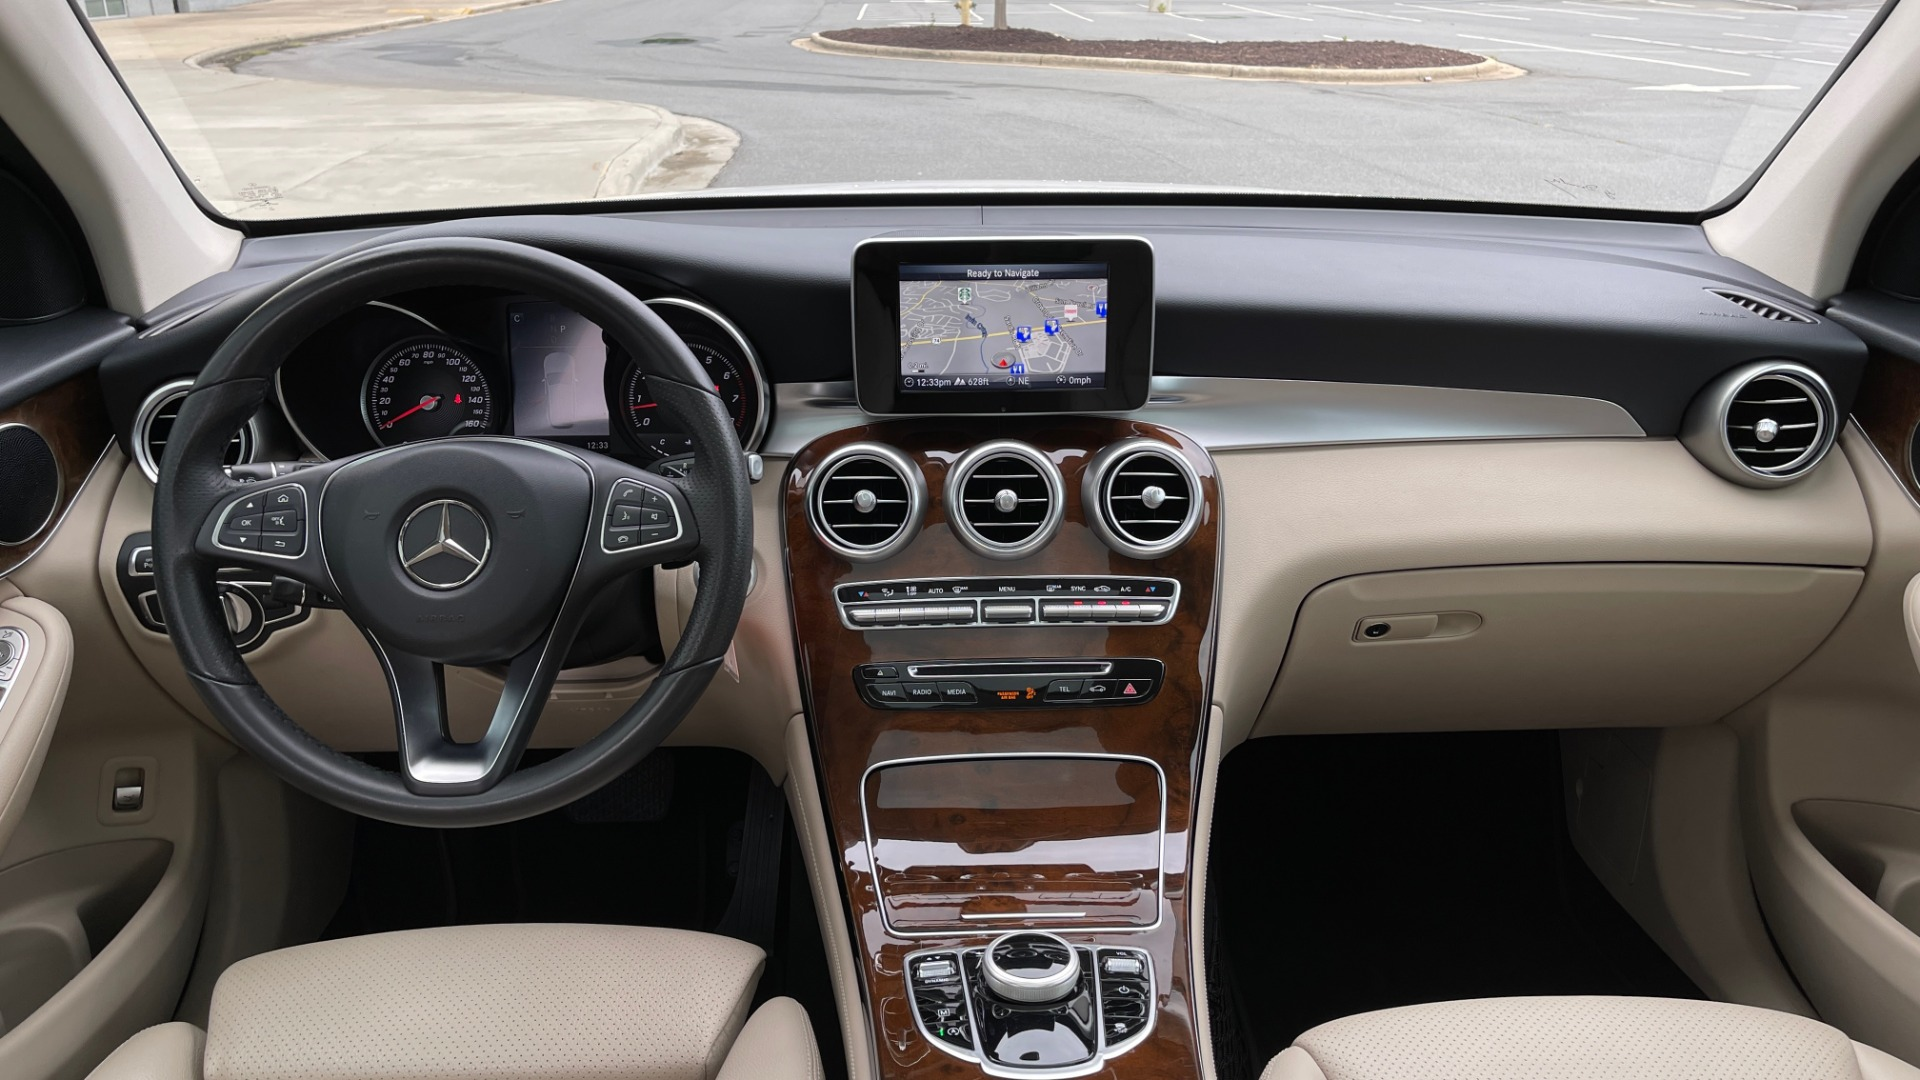 Used 2018 Mercedes-Benz GLC 300 PREMIUM / PANO-ROOF / HTD STS / PARK ASST / REARVIEW for sale $34,613 at Formula Imports in Charlotte NC 28227 50